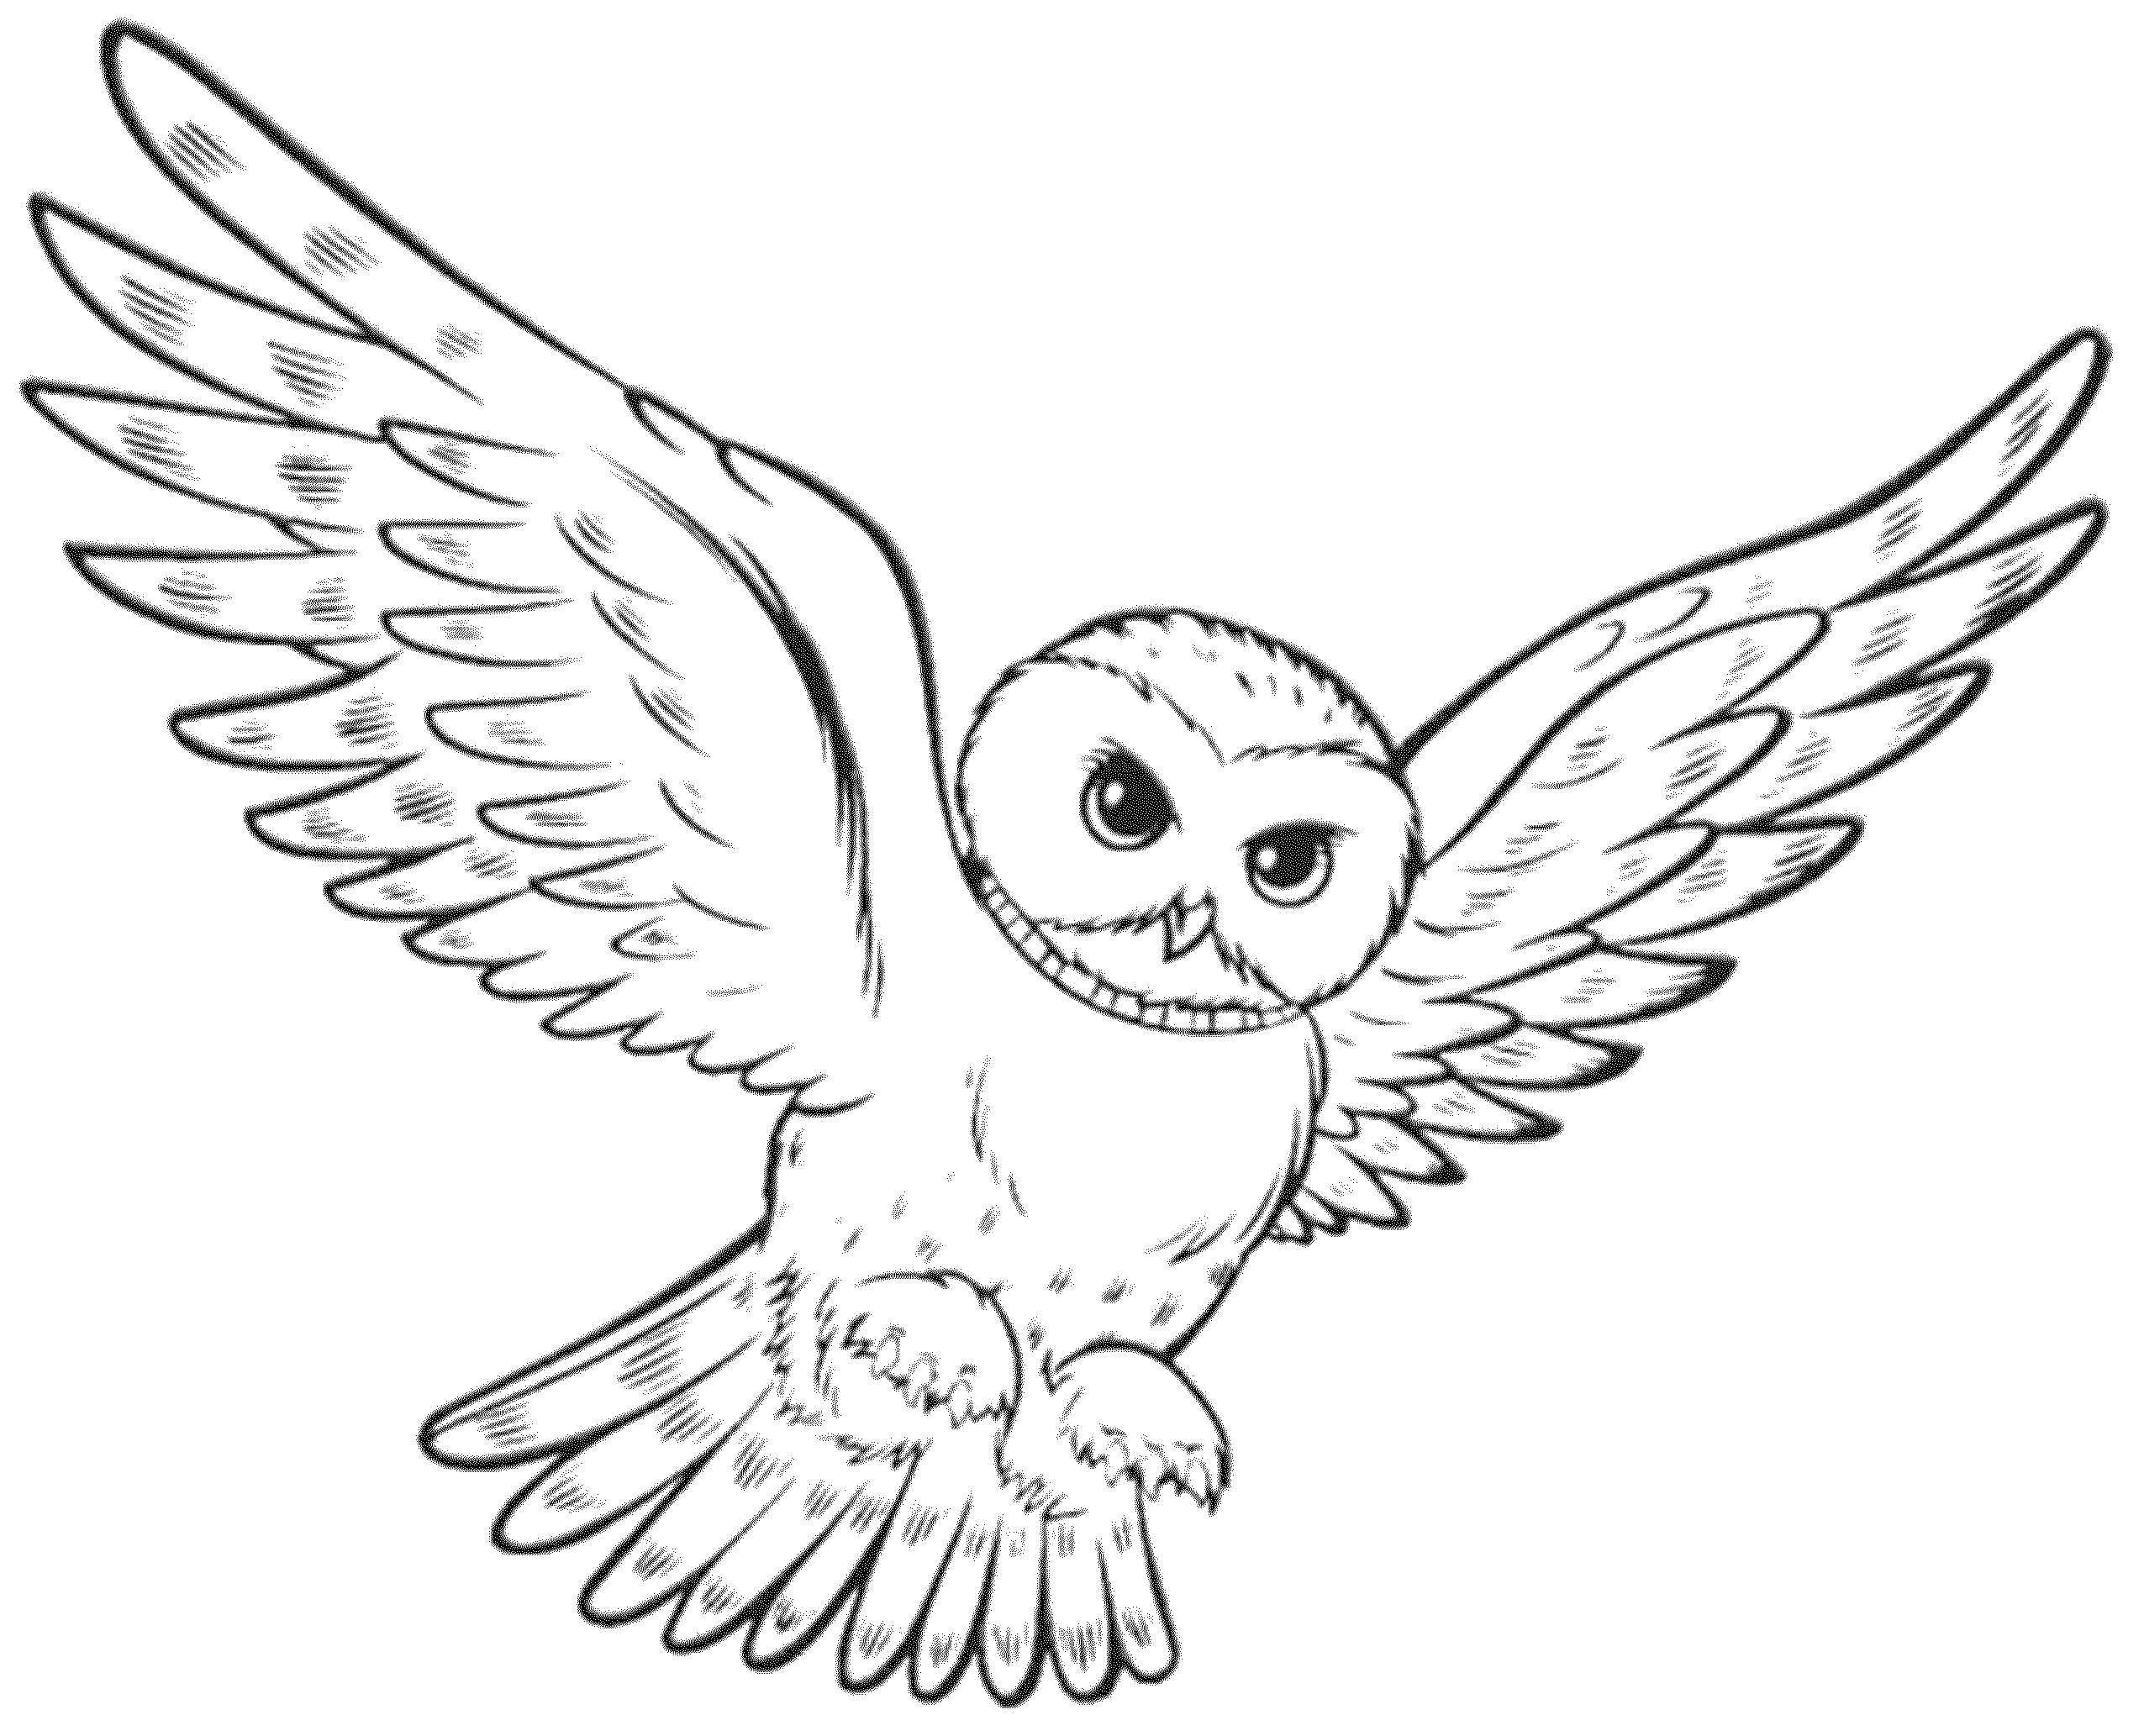 Owl Color Drawing At Getdrawings